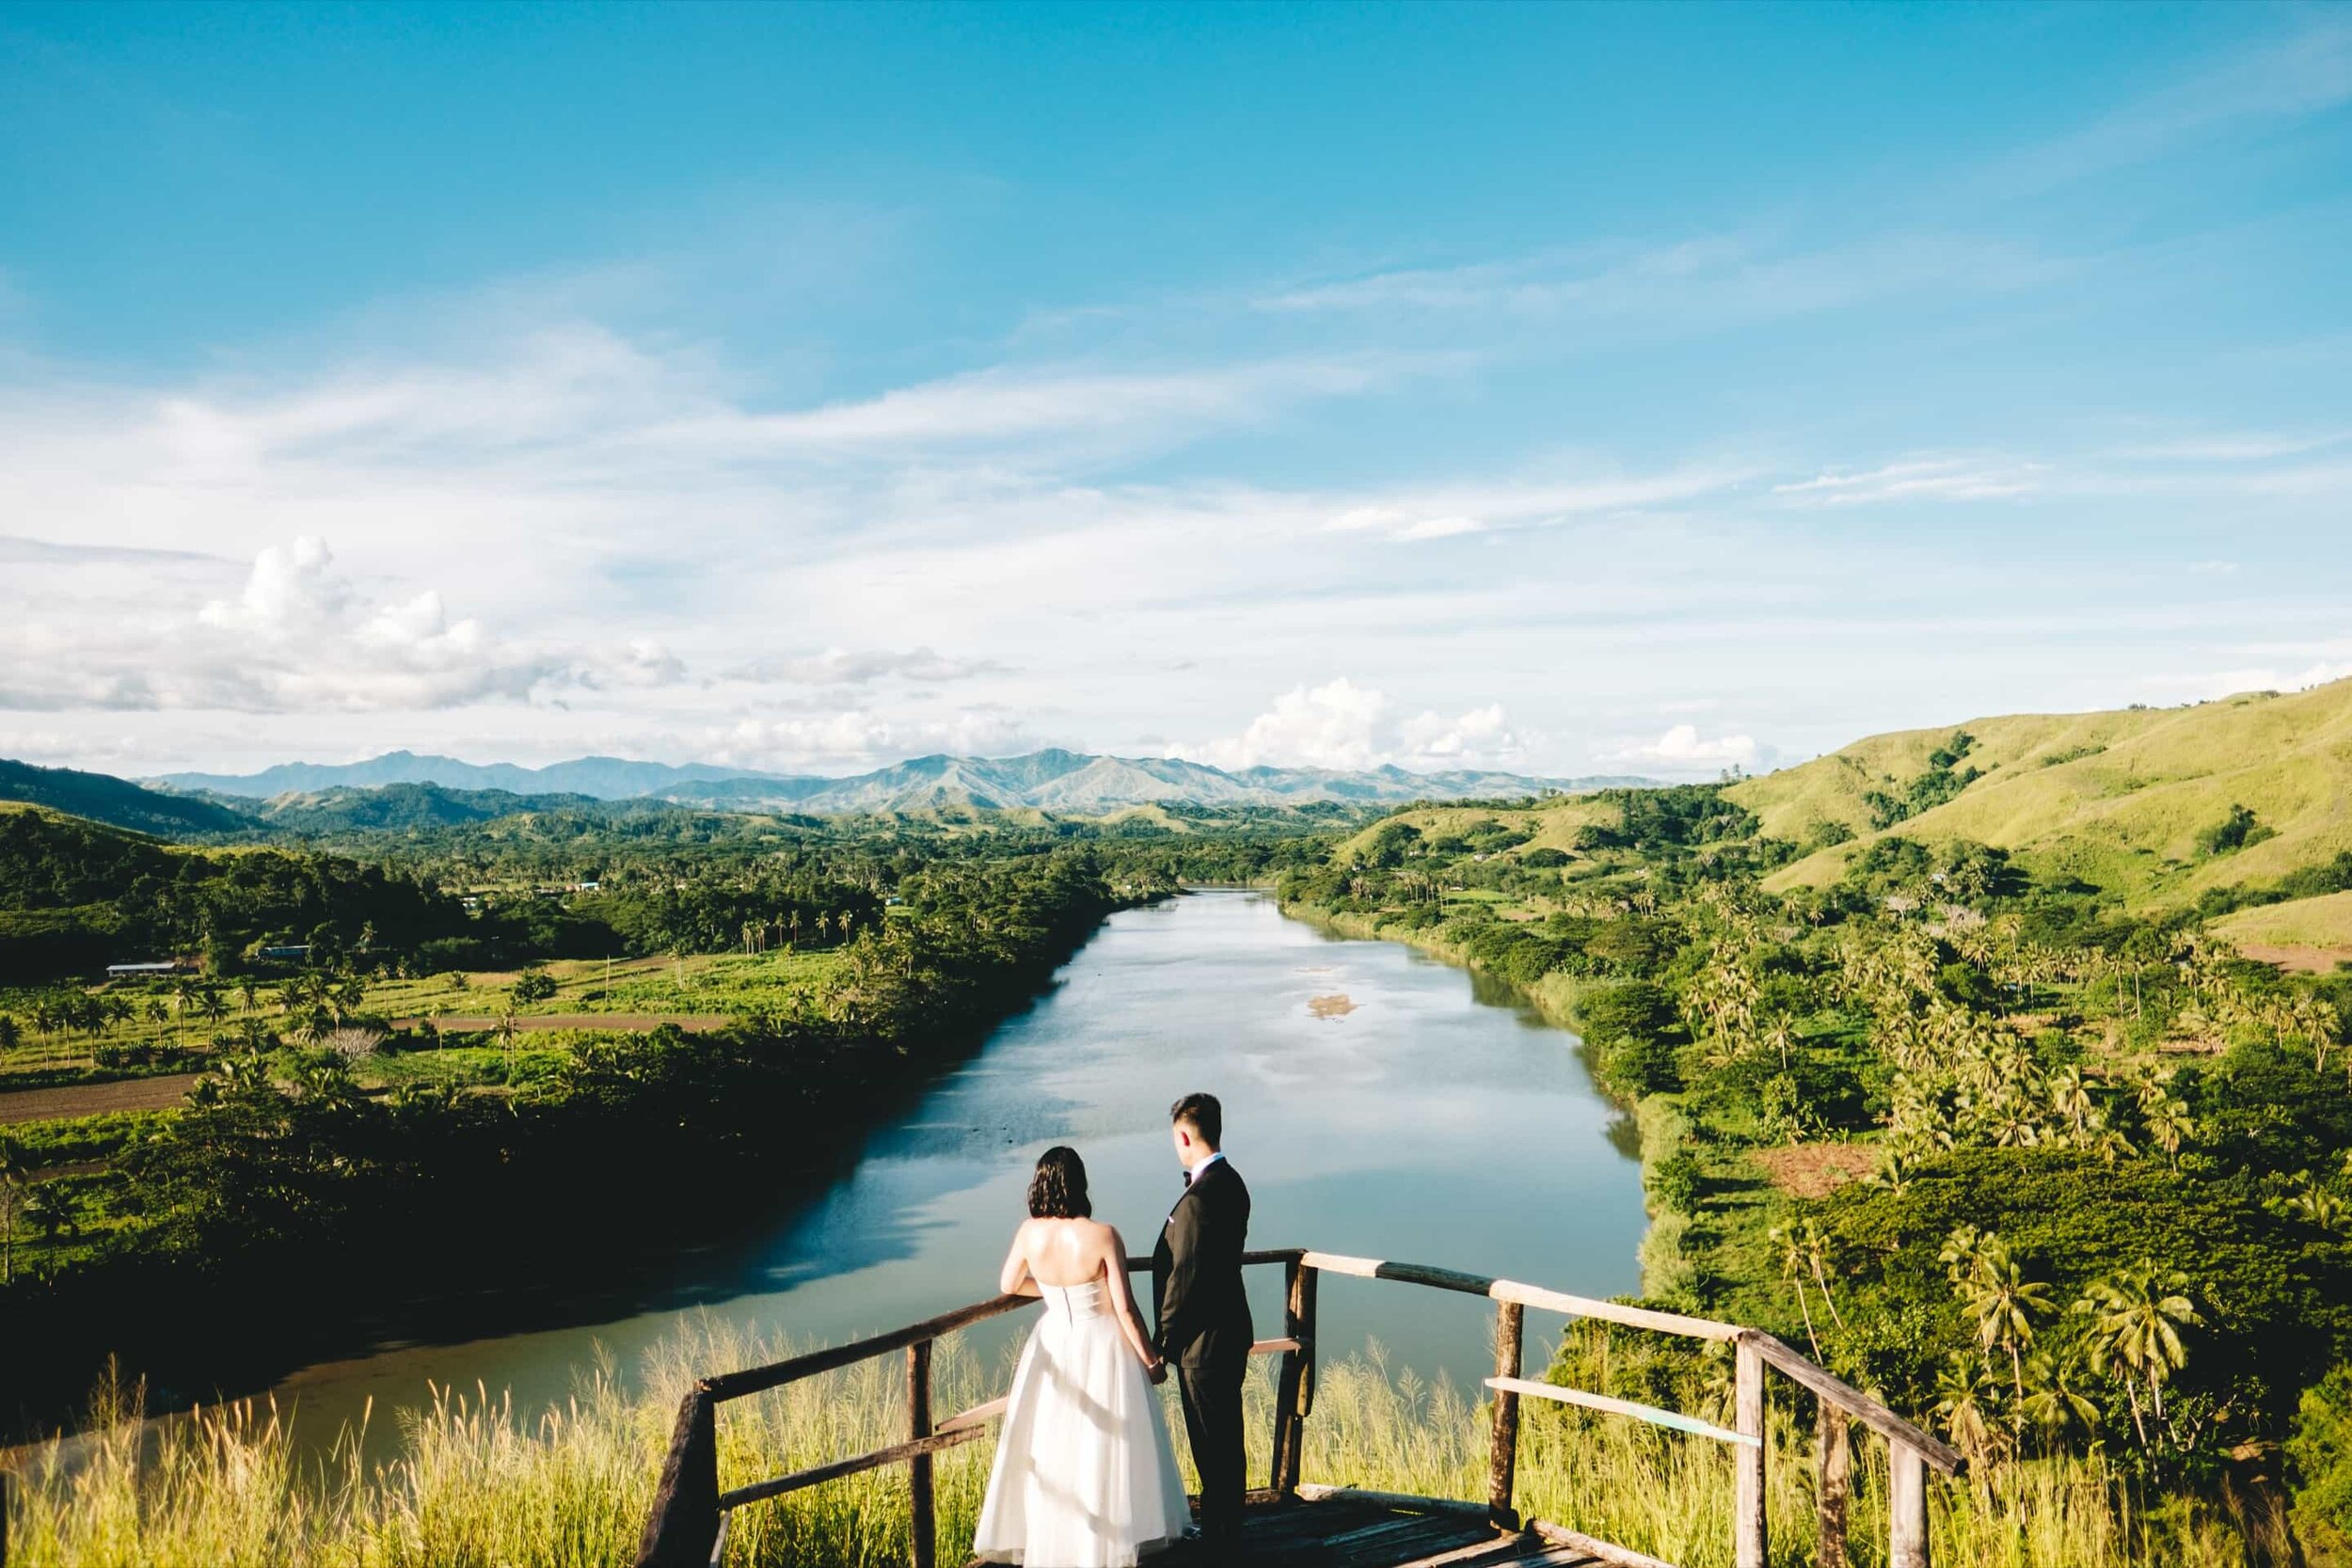 Fiji elopement session of a couple married at the Tavuni Hill Fort looking over the Singatoka River in Fiji.